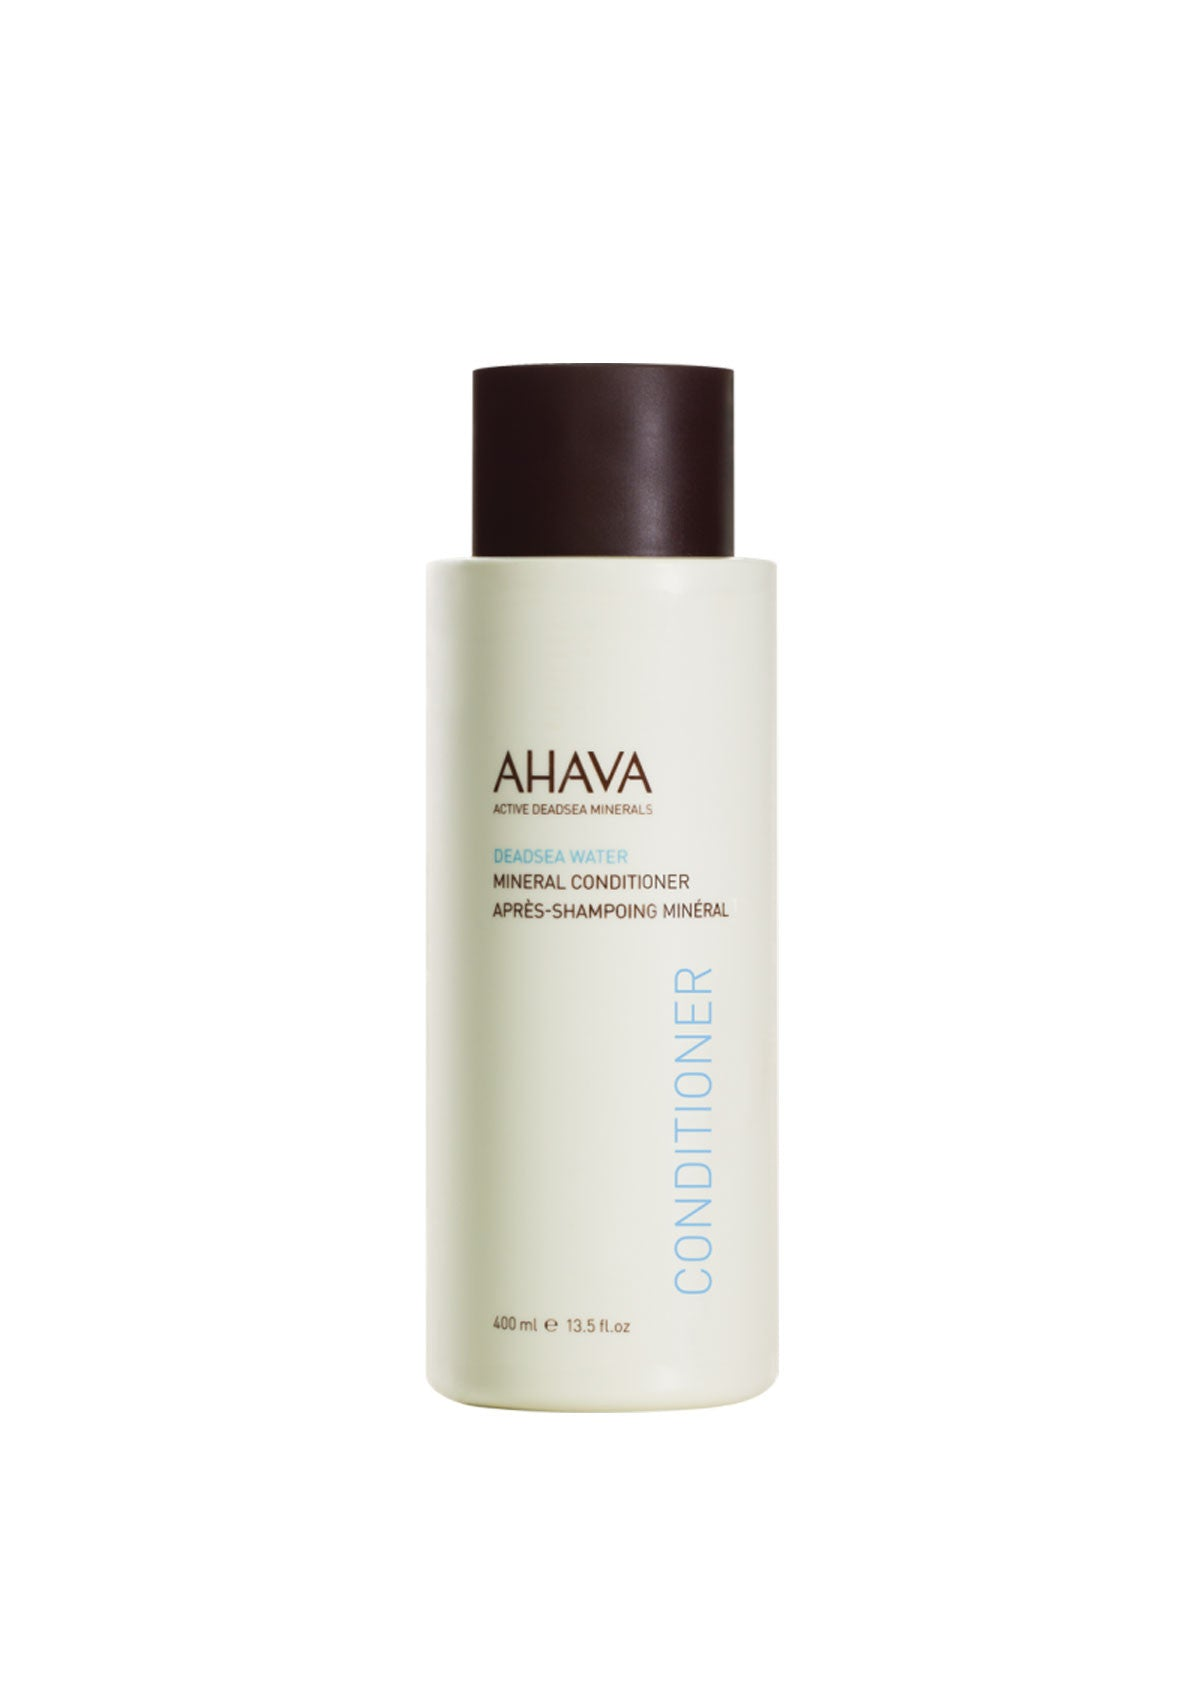 AHAVA - Mineral Conditioner - DeadSeaShop.co.uk